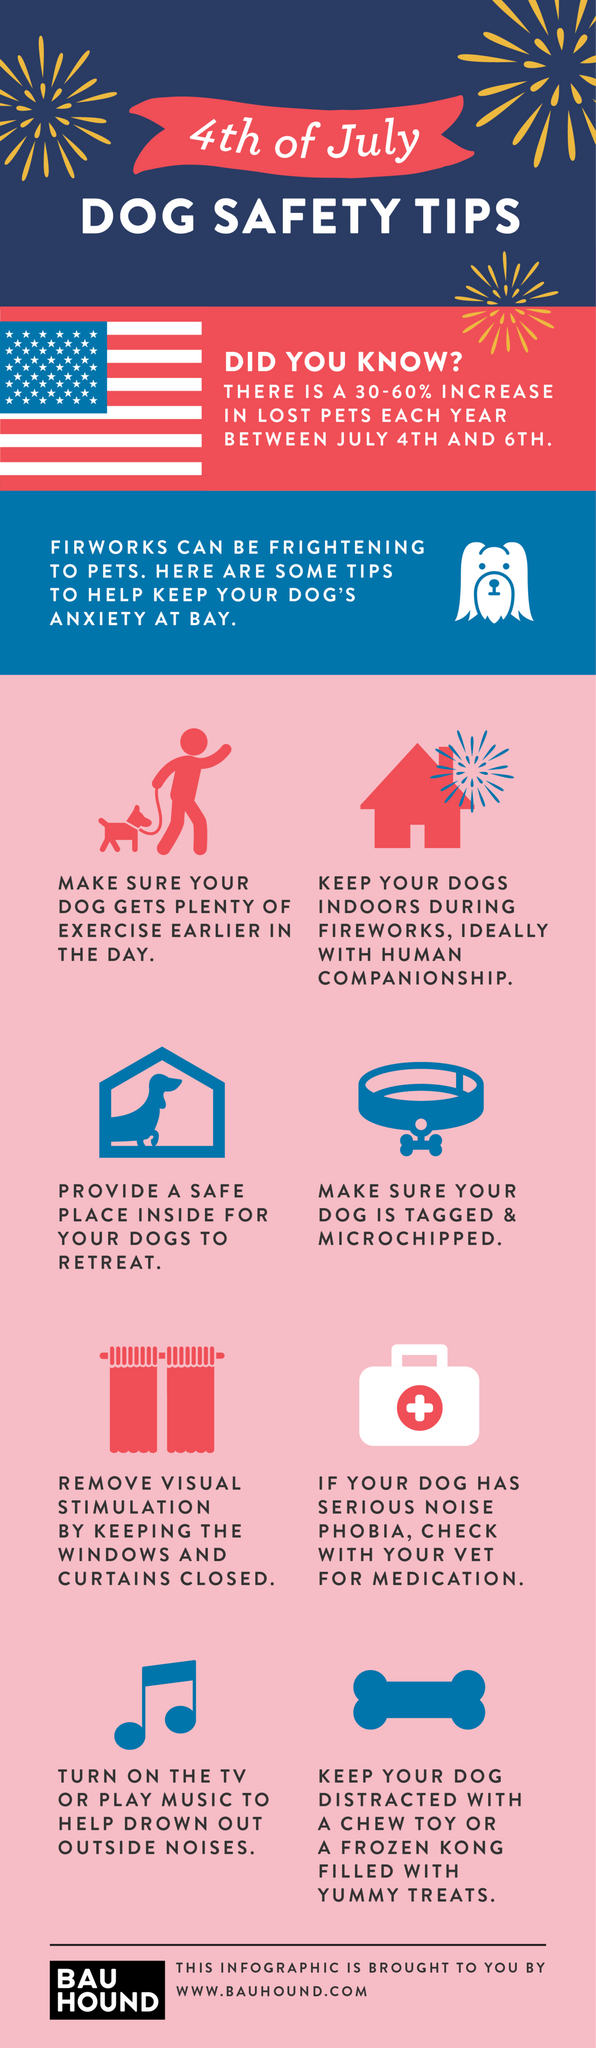 dogs and fireworks safety tips infographic